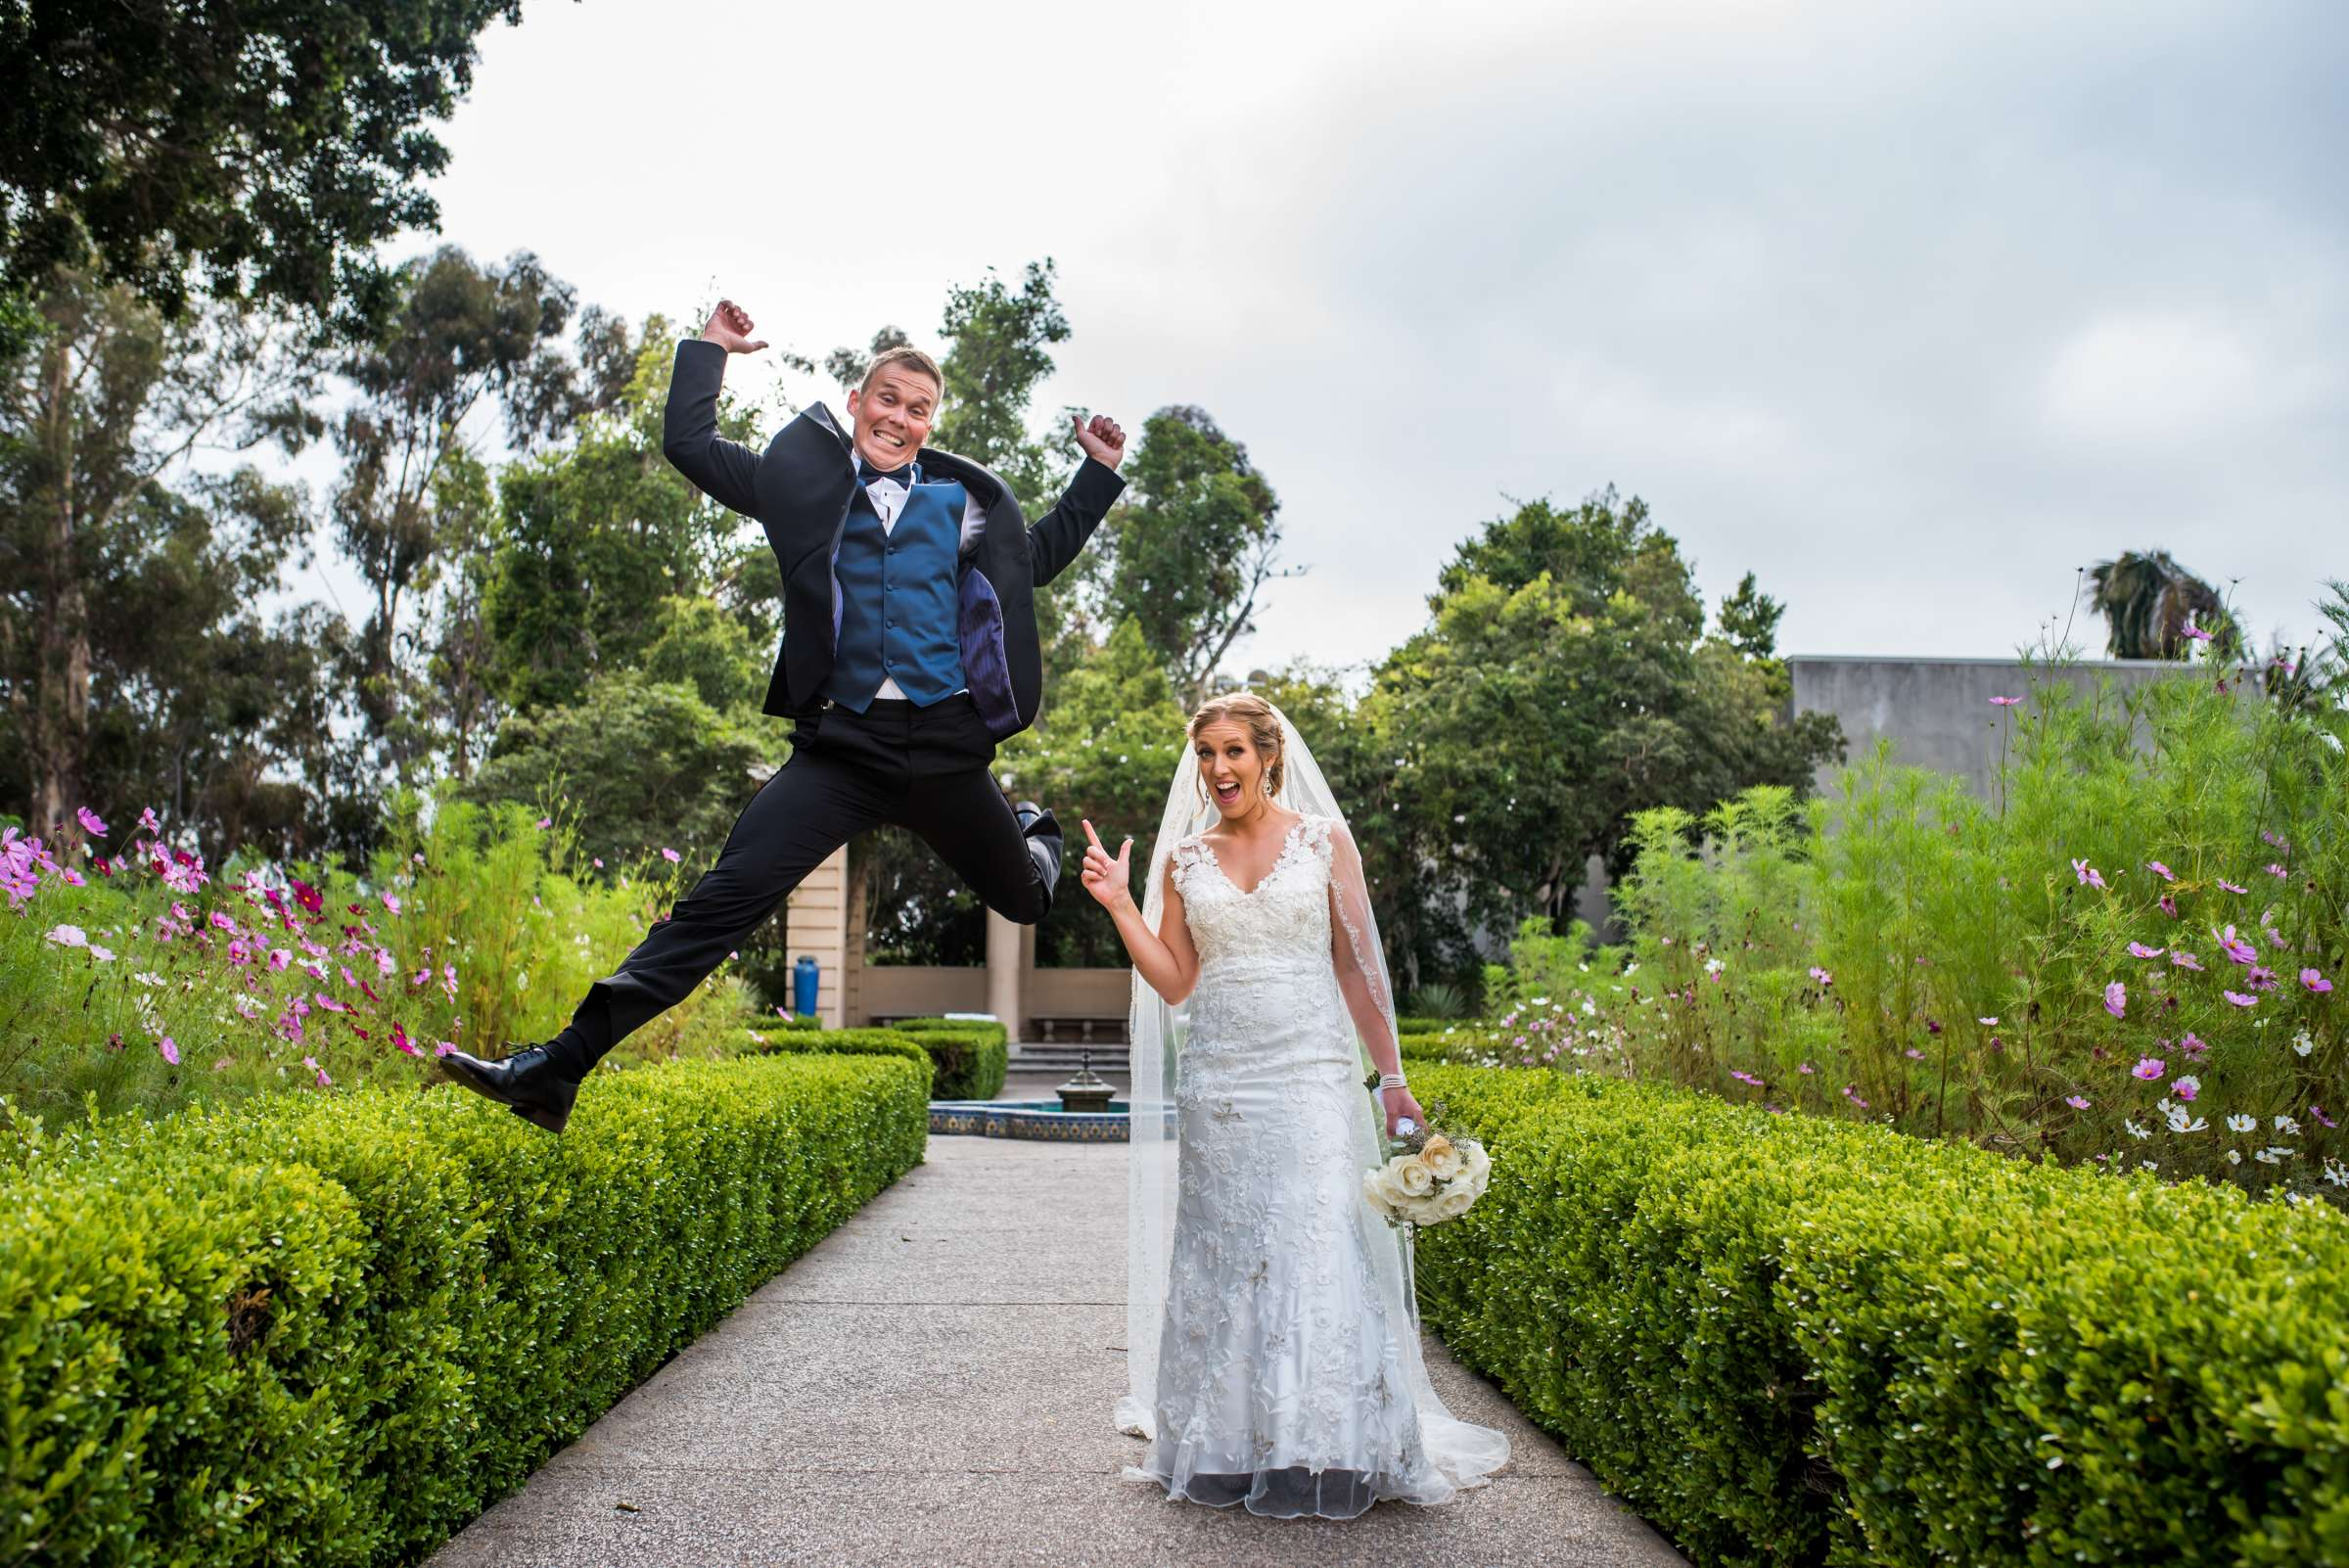 San Diego Courthouse Wedding, Stephanie and Tyler Wedding Photo #2 by True Photography